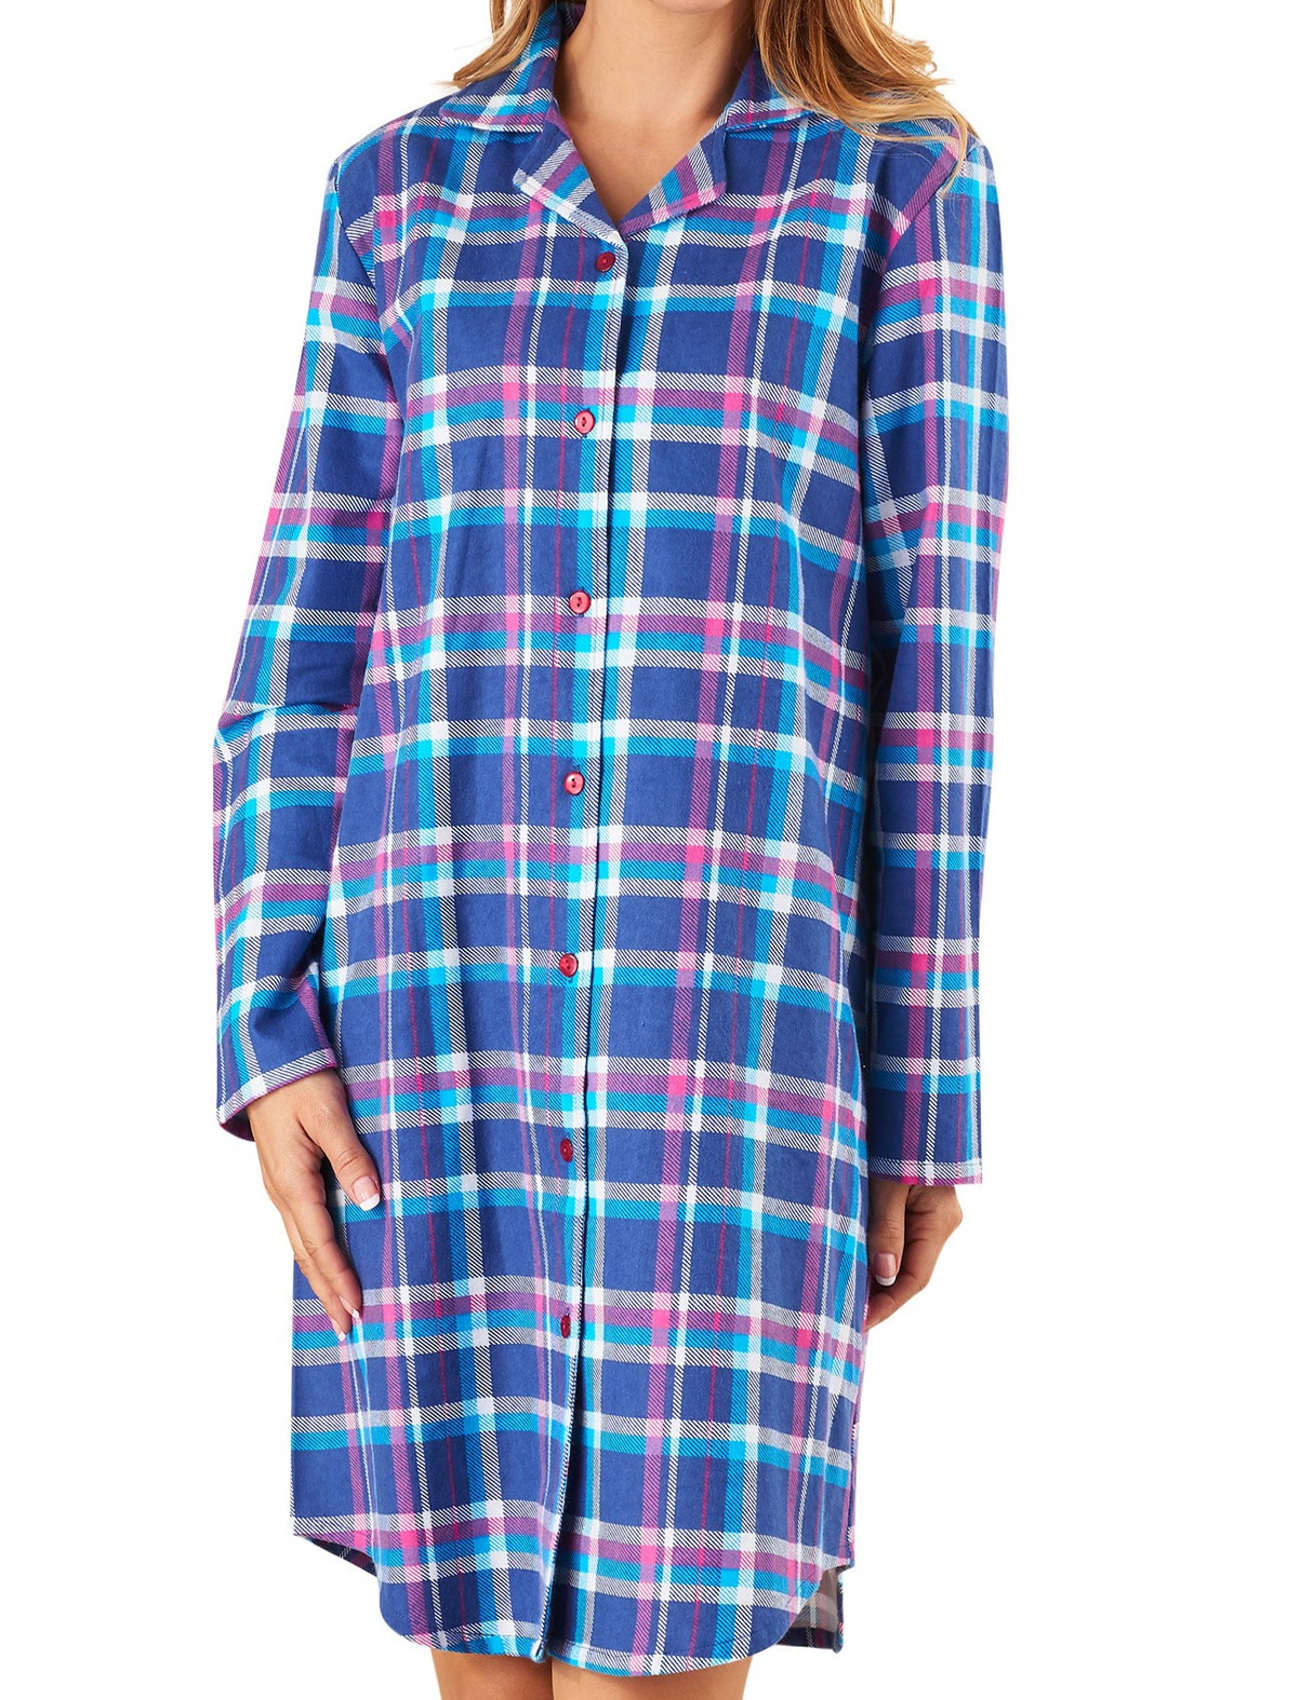 606b32bd37 Checked Nightshirt Womens Slenderella Brushed Cotton Long Sleeved Tartan  Nighty